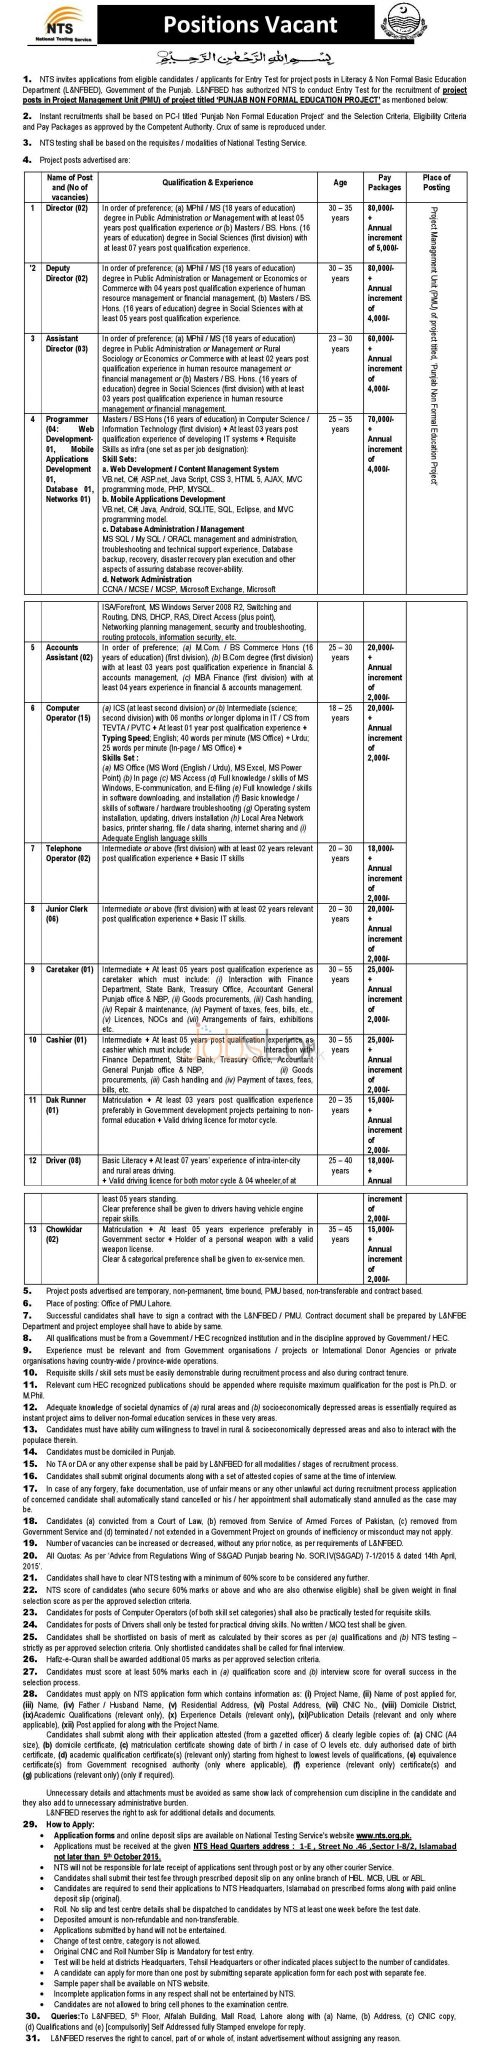 NTS Literacy NFBE Department Jobs 2015 Punjab Non Formal Education Project